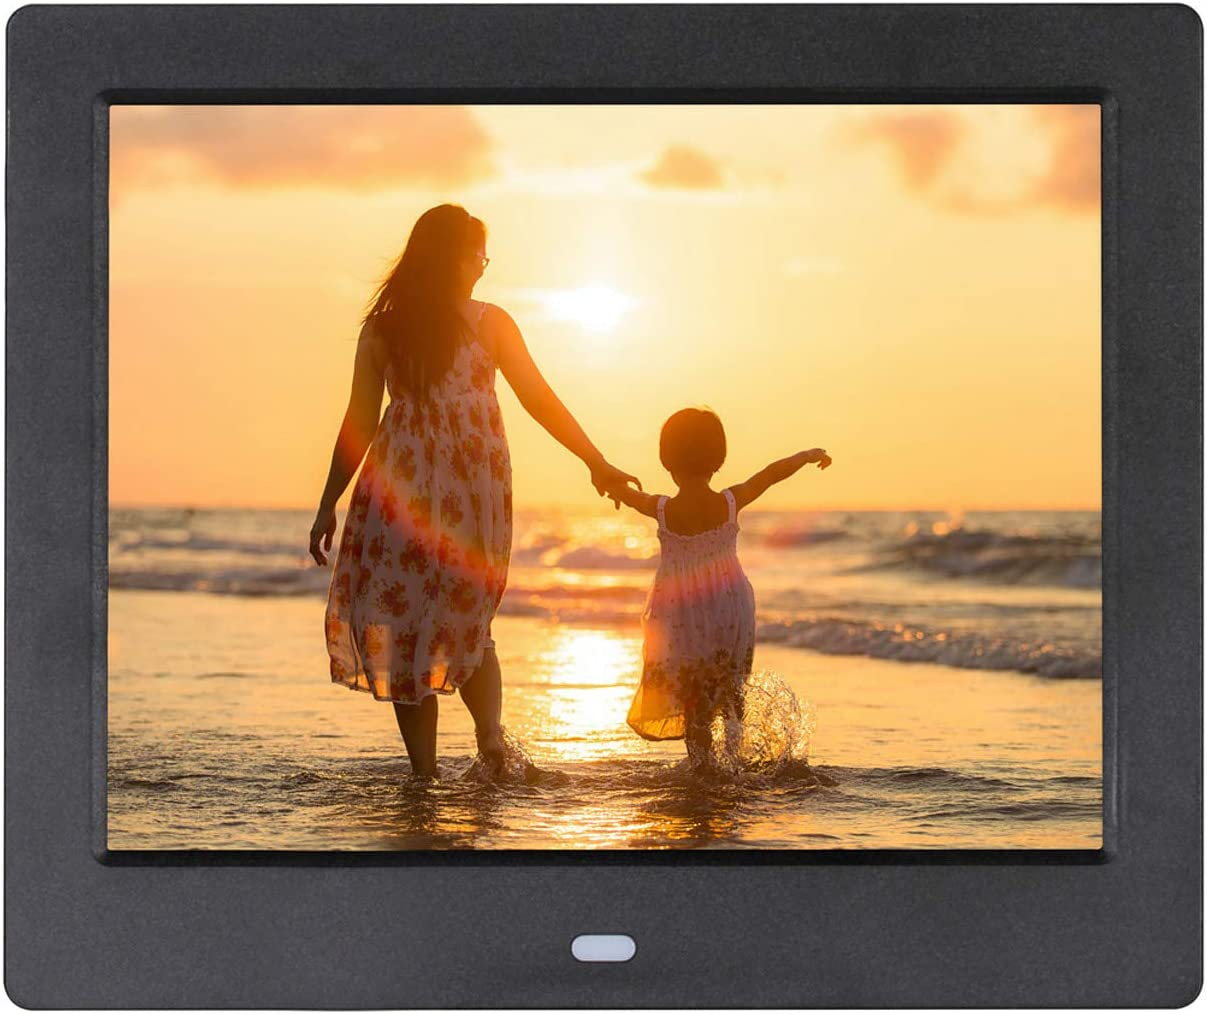 ACOWSUN Digital Picture Frame 10 Inch HD 1024X600 Plastic case Can Play Photos Music Videos When Insert Photo Frames USB SD with Remote Control and 4G SD Card Include